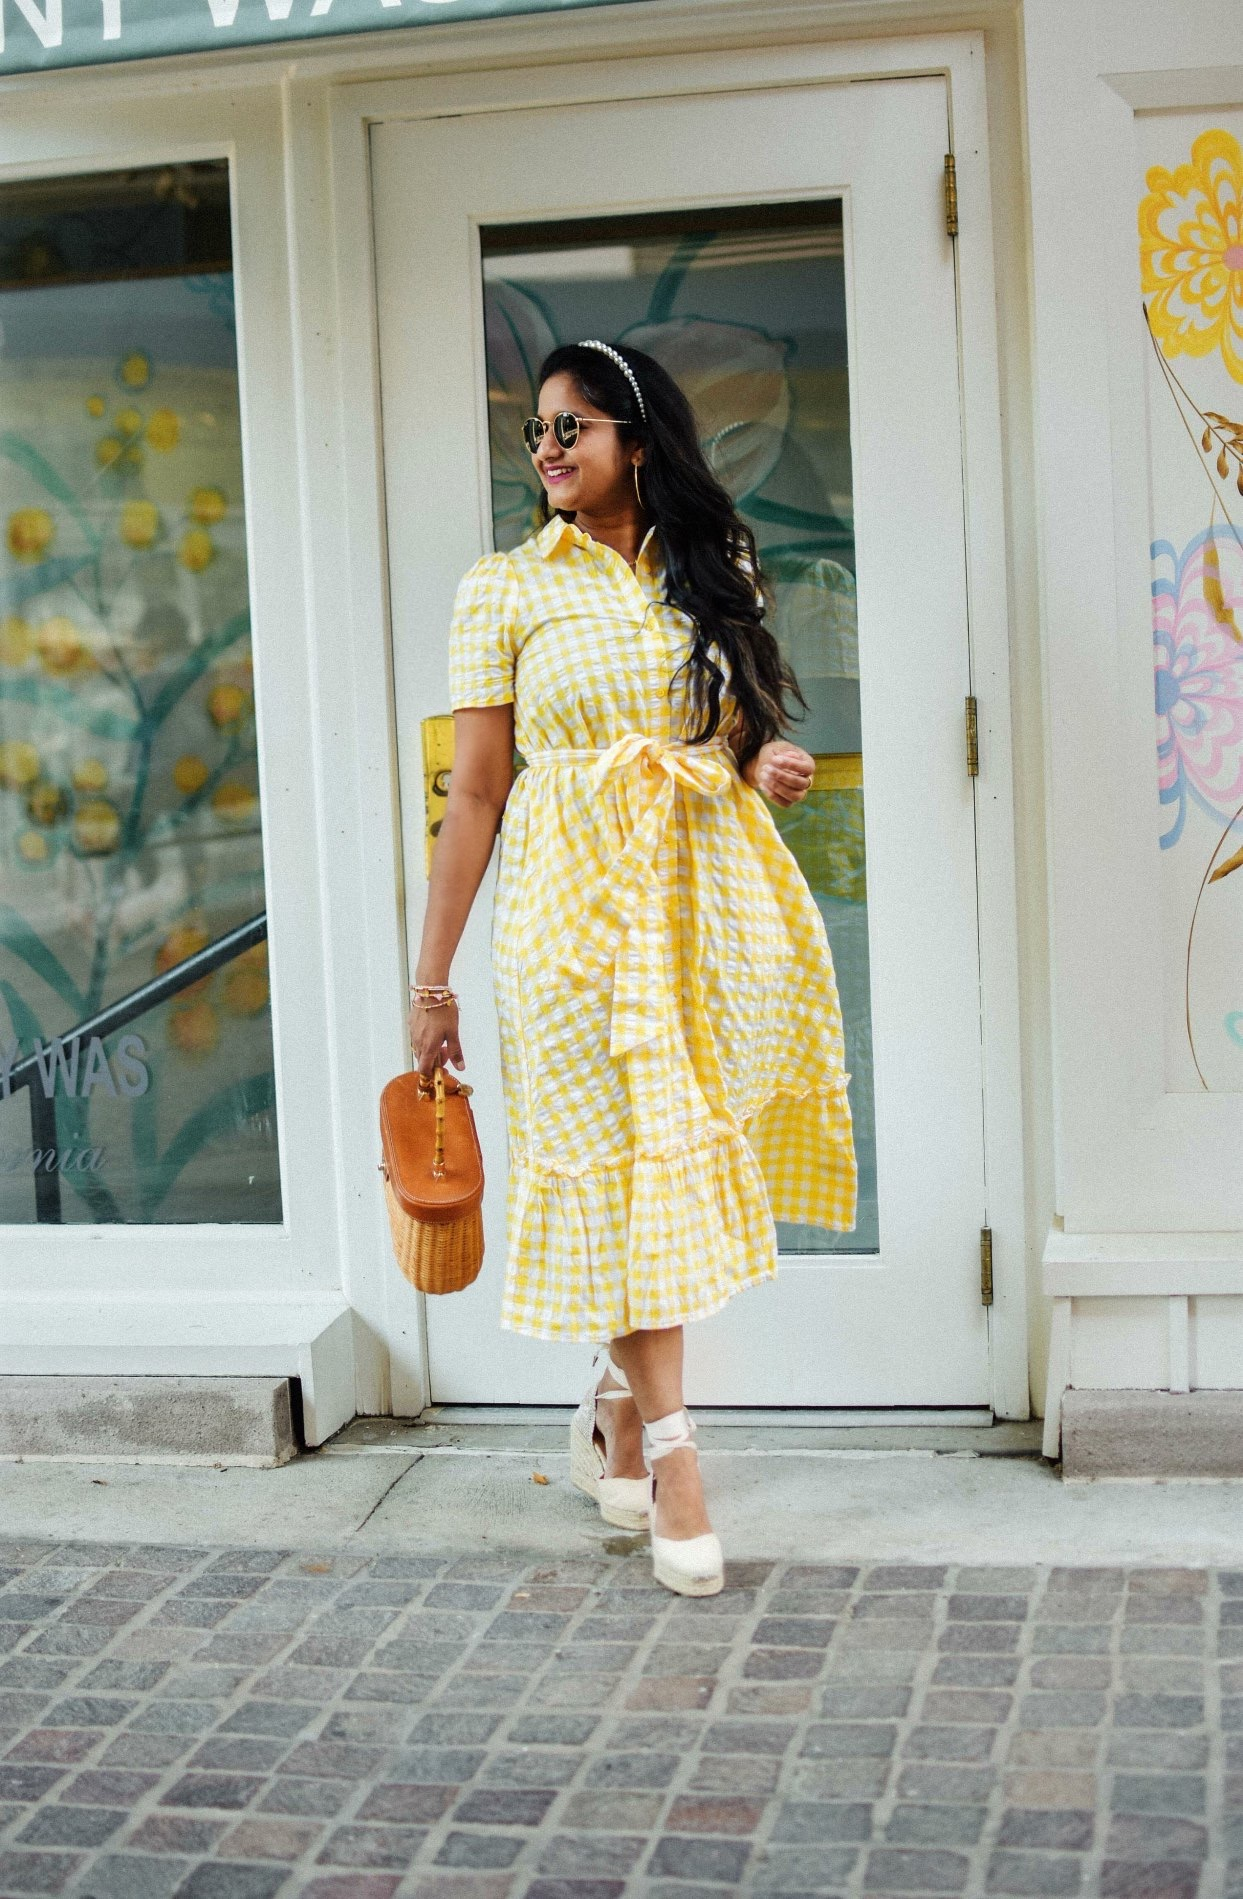 Wearing Wearing Lisa Marie Fernandez for Target Gingham Puff Sleeve Shirtdress, Castaner Carina Wedges in Cream, J.McLaughlin Ava wicker bag, pearl Headband1 | Lisa Marie Fernandez by popular Maryland fashion blog, Dreaming Loud: image of a woman a Target Lisa Marie Fernandez yellow gingham dress, Castañer cream Carina 80 ankle tie wedge sandals, Amazon LXBSIYI Huge Gold Hoop Earrings, Olive and Piper Madison Pearl Headband, and holding a J. McLaughlin Skip to the end of the images gallery Skip to the beginning of the images gallery Ava Wicker Bag.